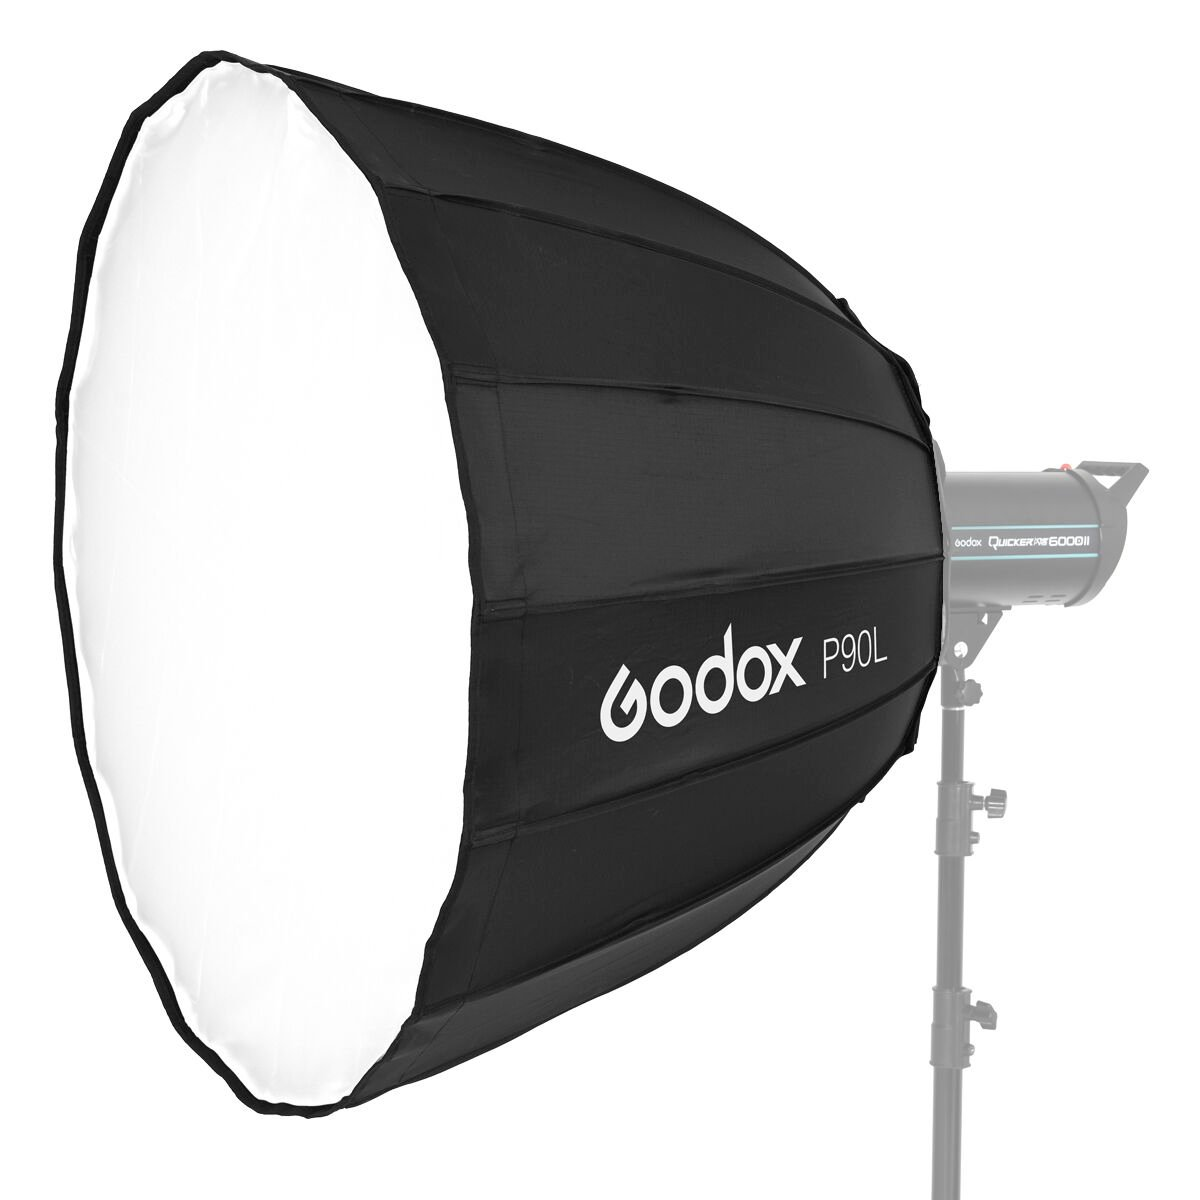 Godox Parabolisk deep softbox 90cm